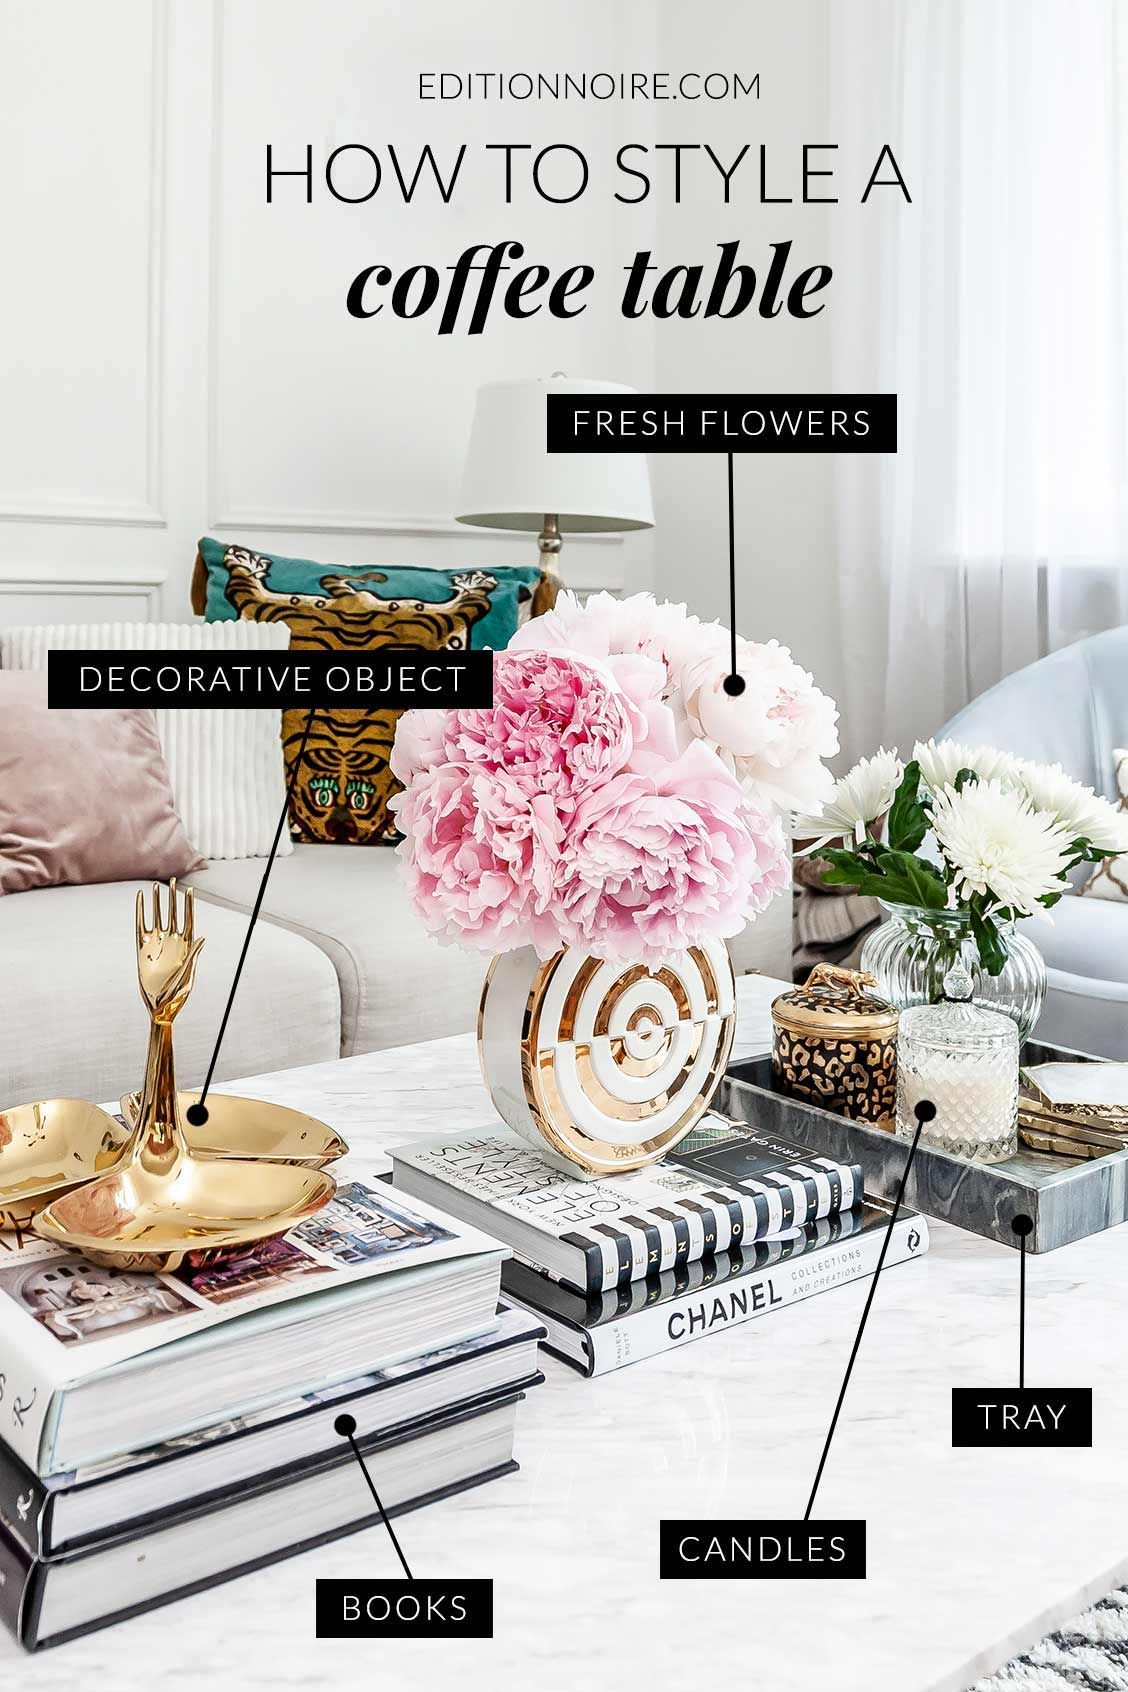 How to Style A Coffee Table - EditionNoire